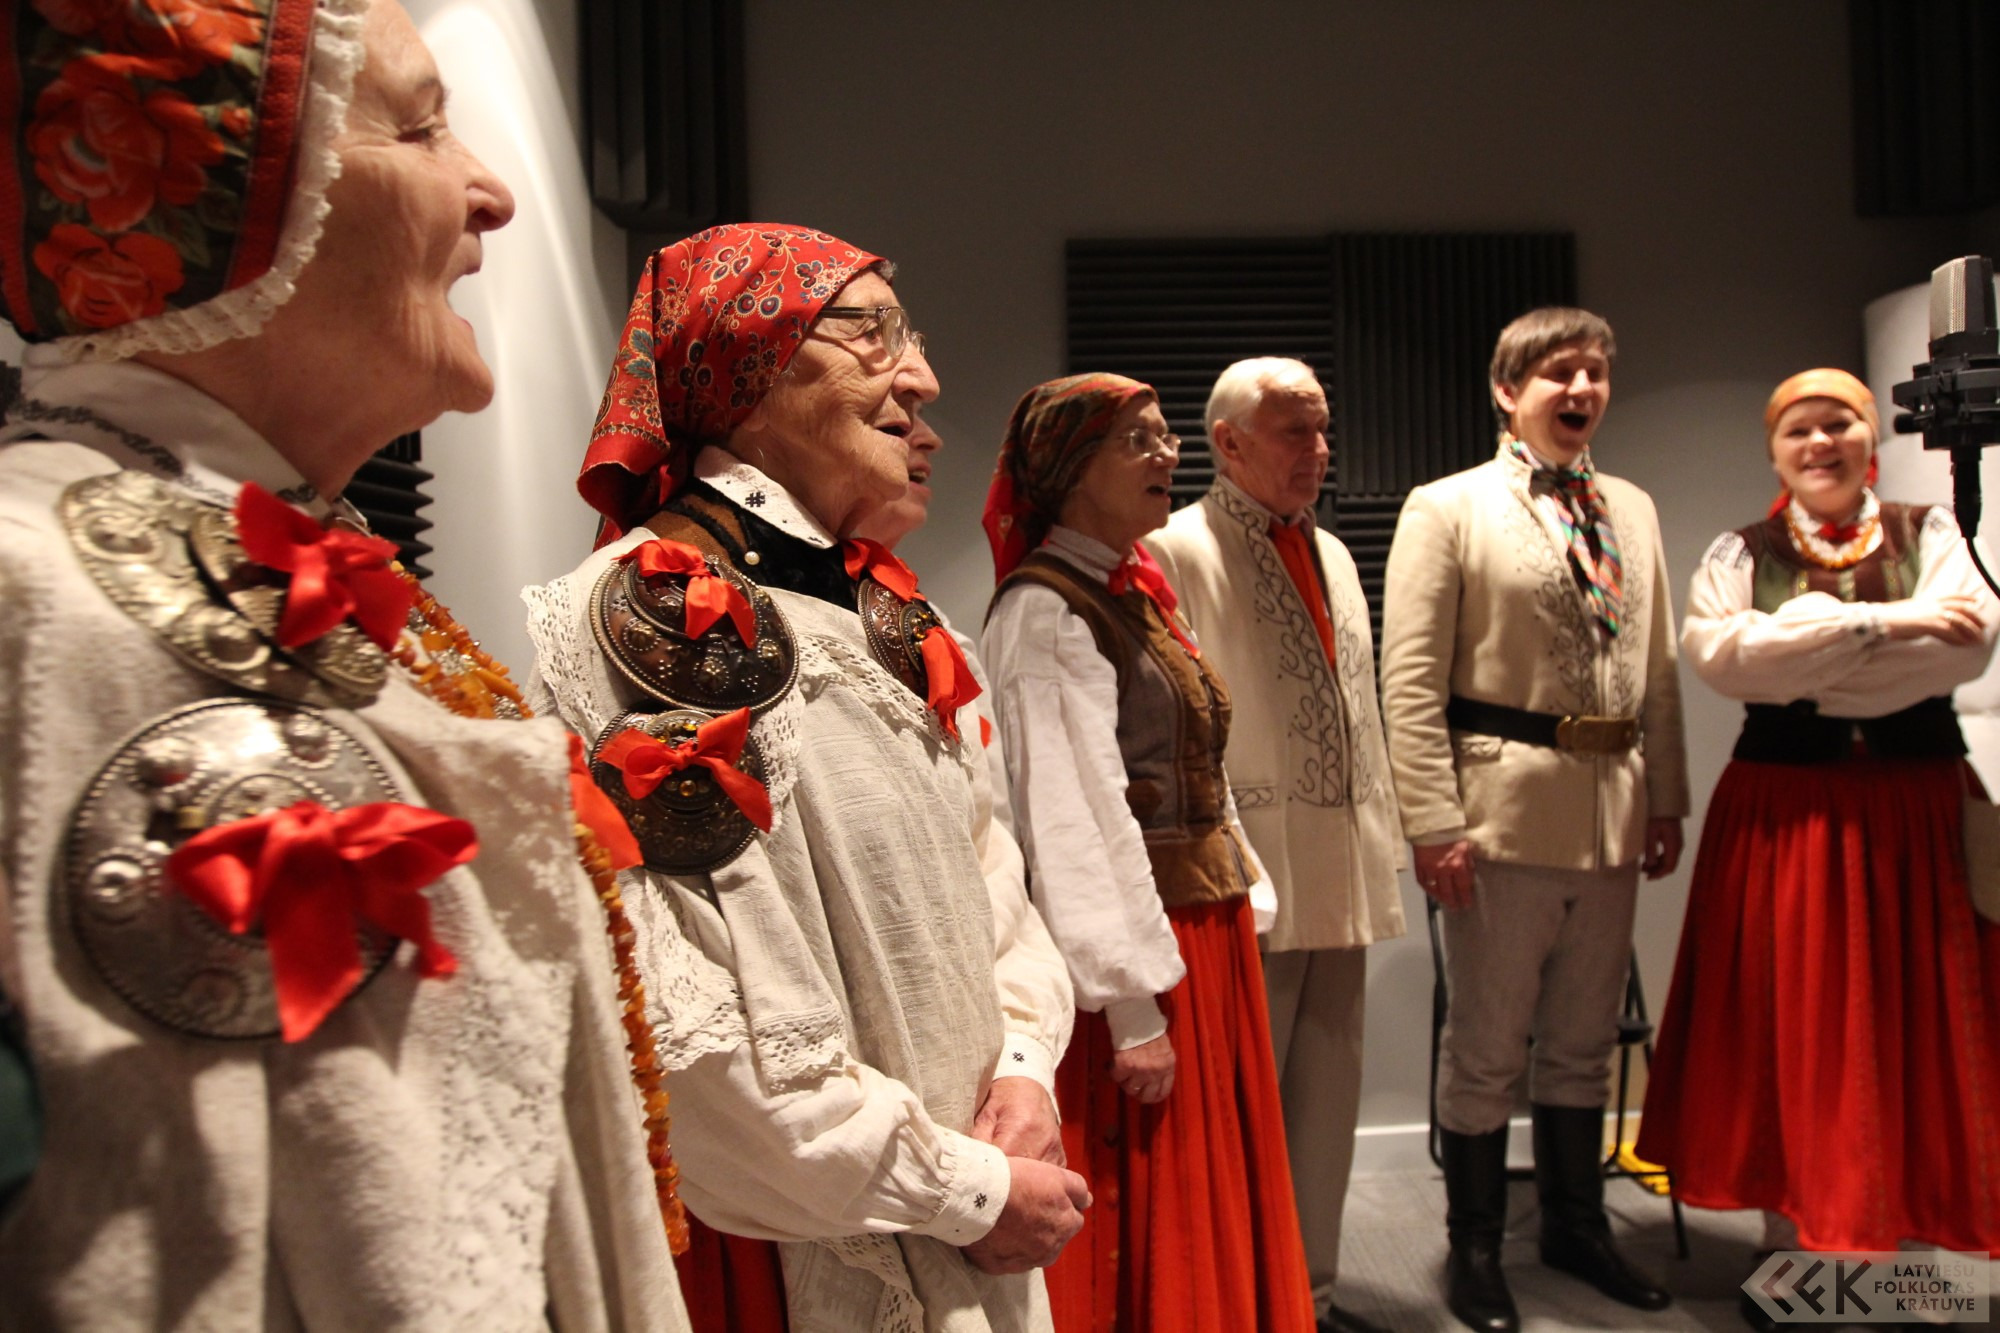 The Otaņķi Ethnographic Ensemble at Sound Recording Studio of the National Library of Latvia in 2015. Photo by Aigars Lielbārdis